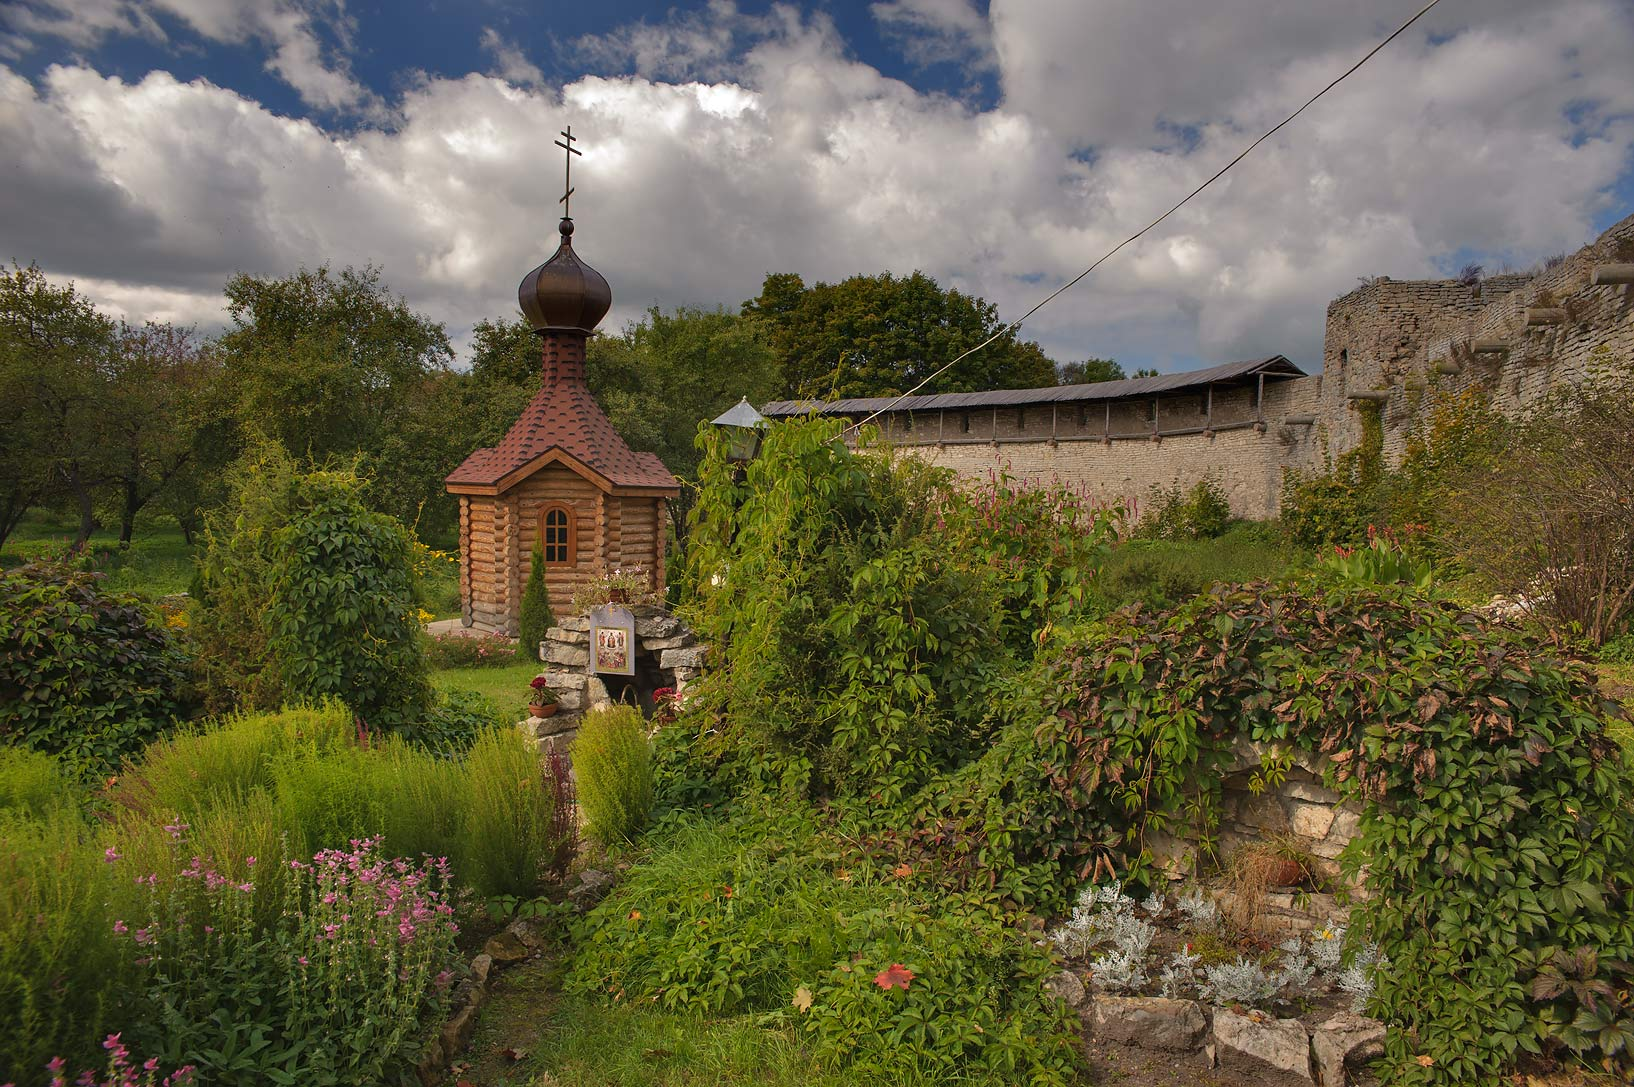 Church garden in Porkhov Fortress in Porkhov, Pskov Region. Russia